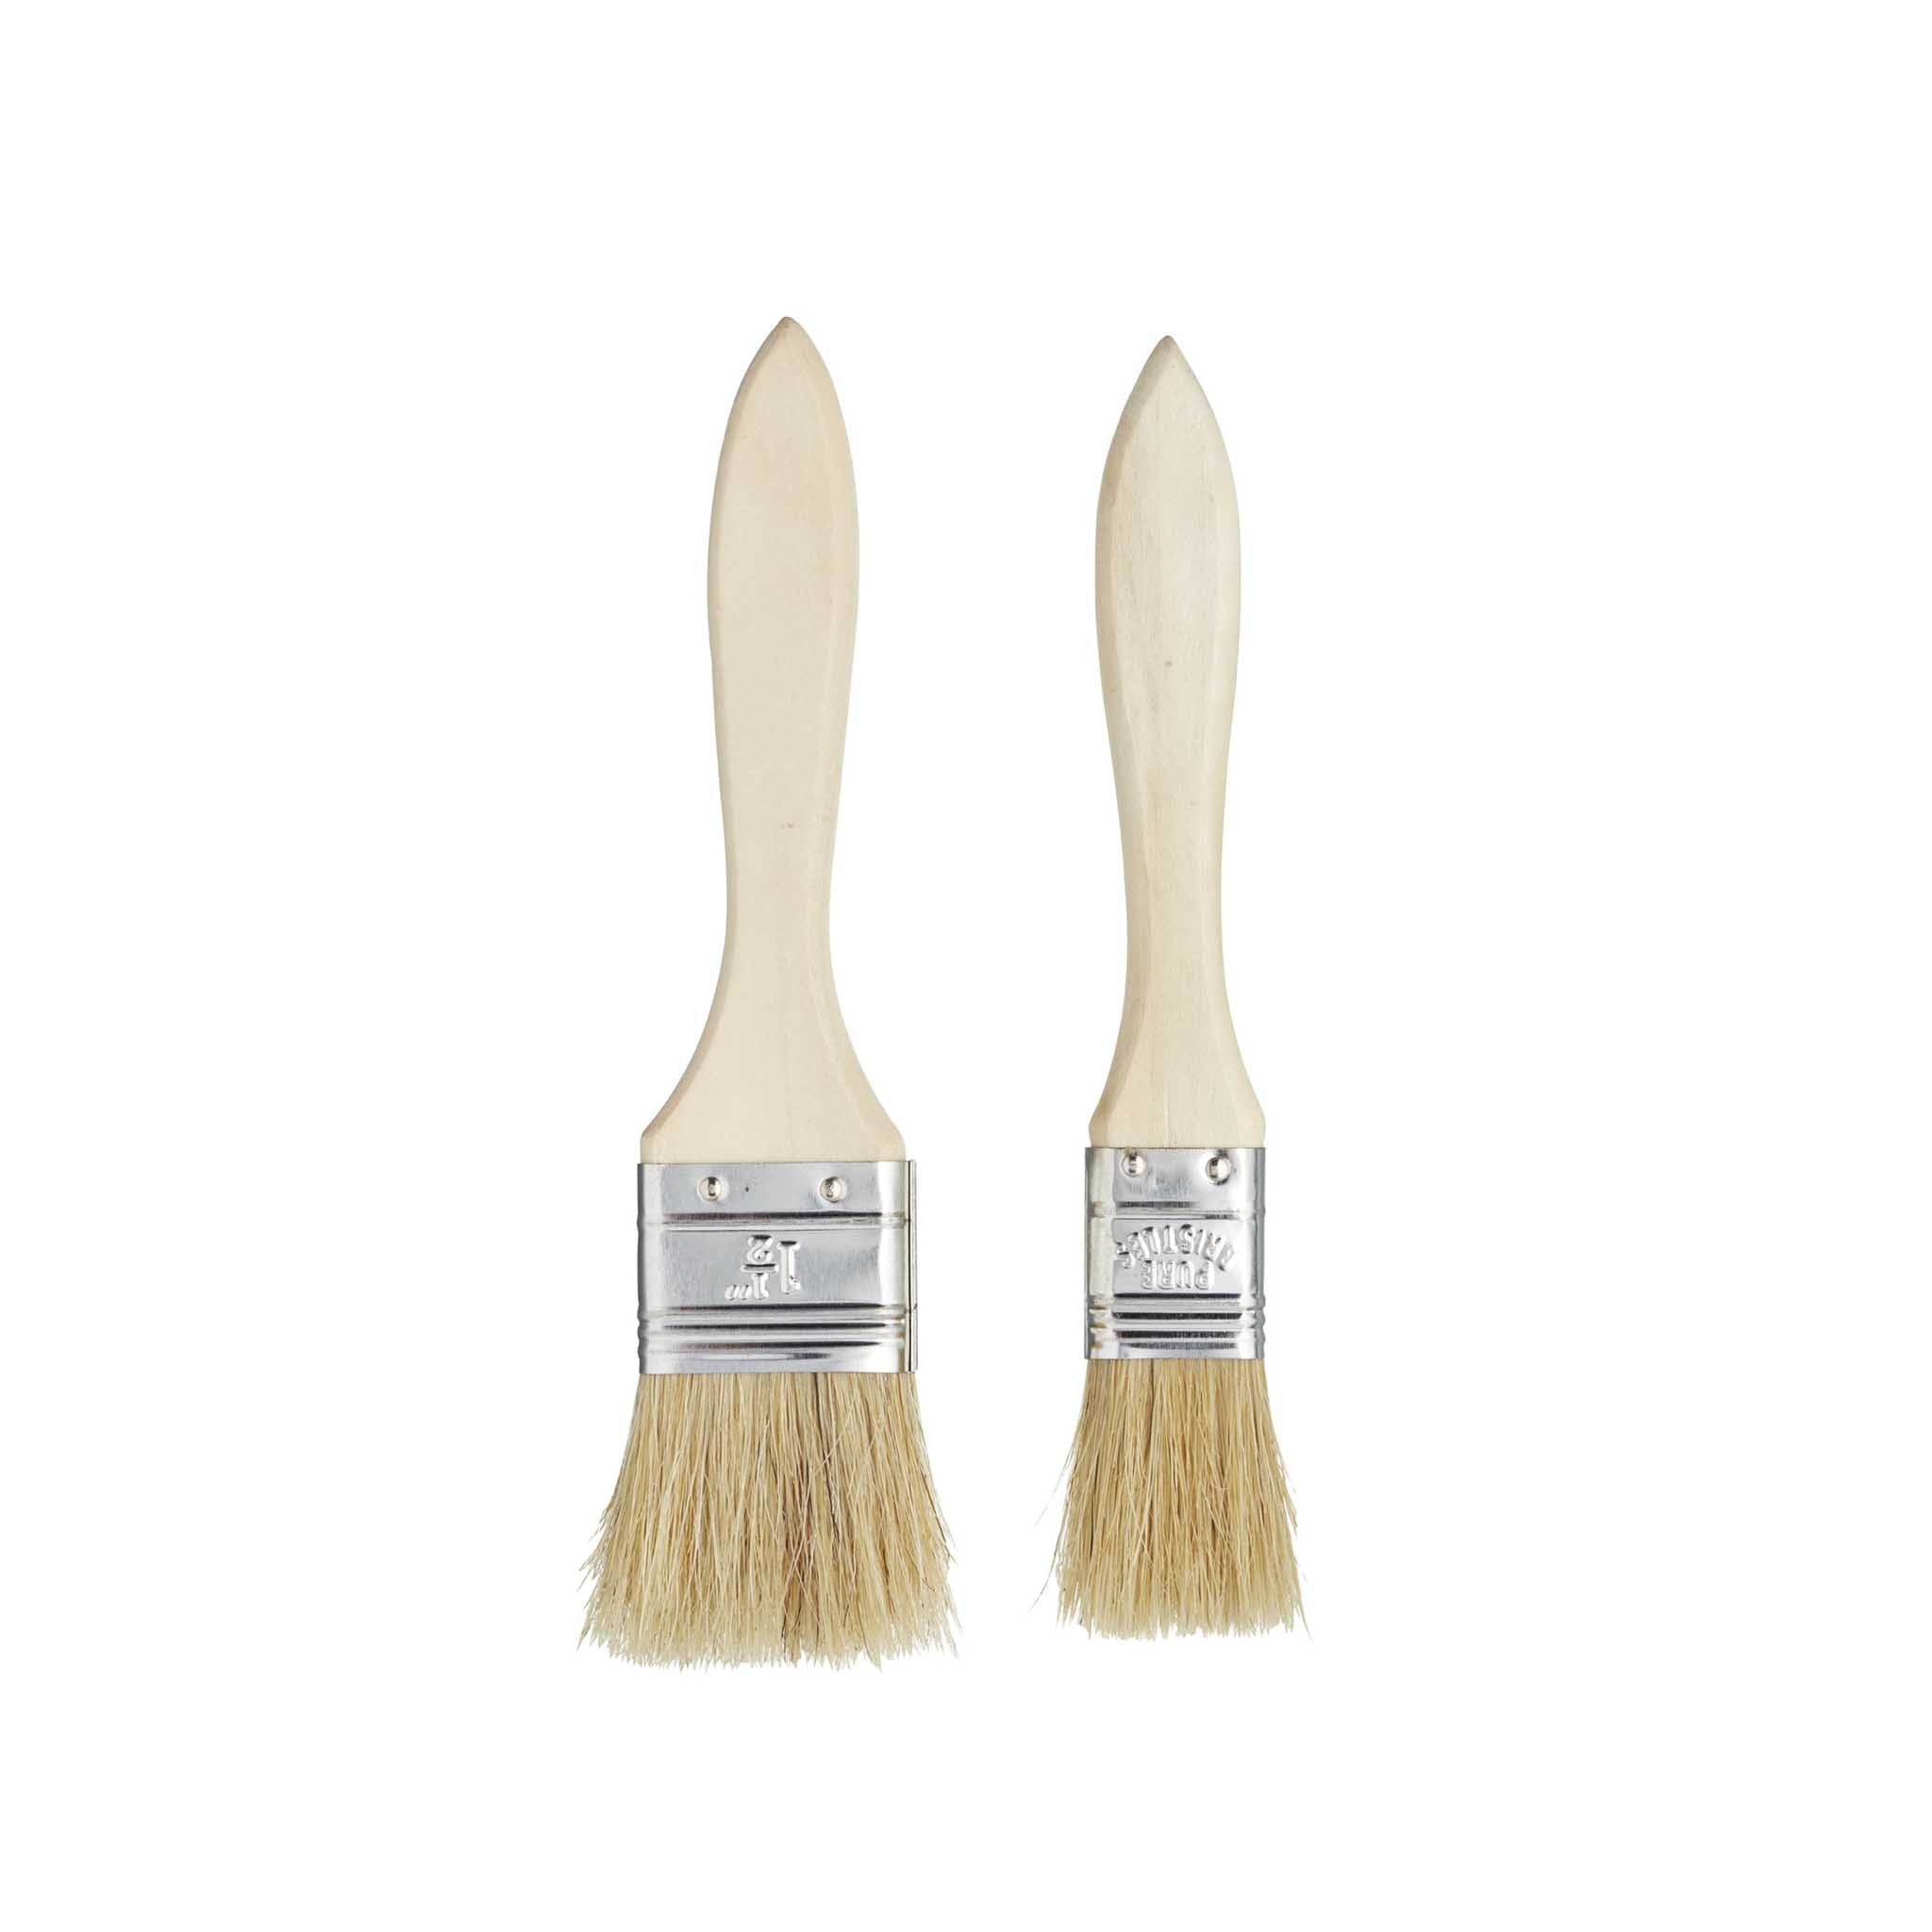 Set of 2 Patisserie Brushes